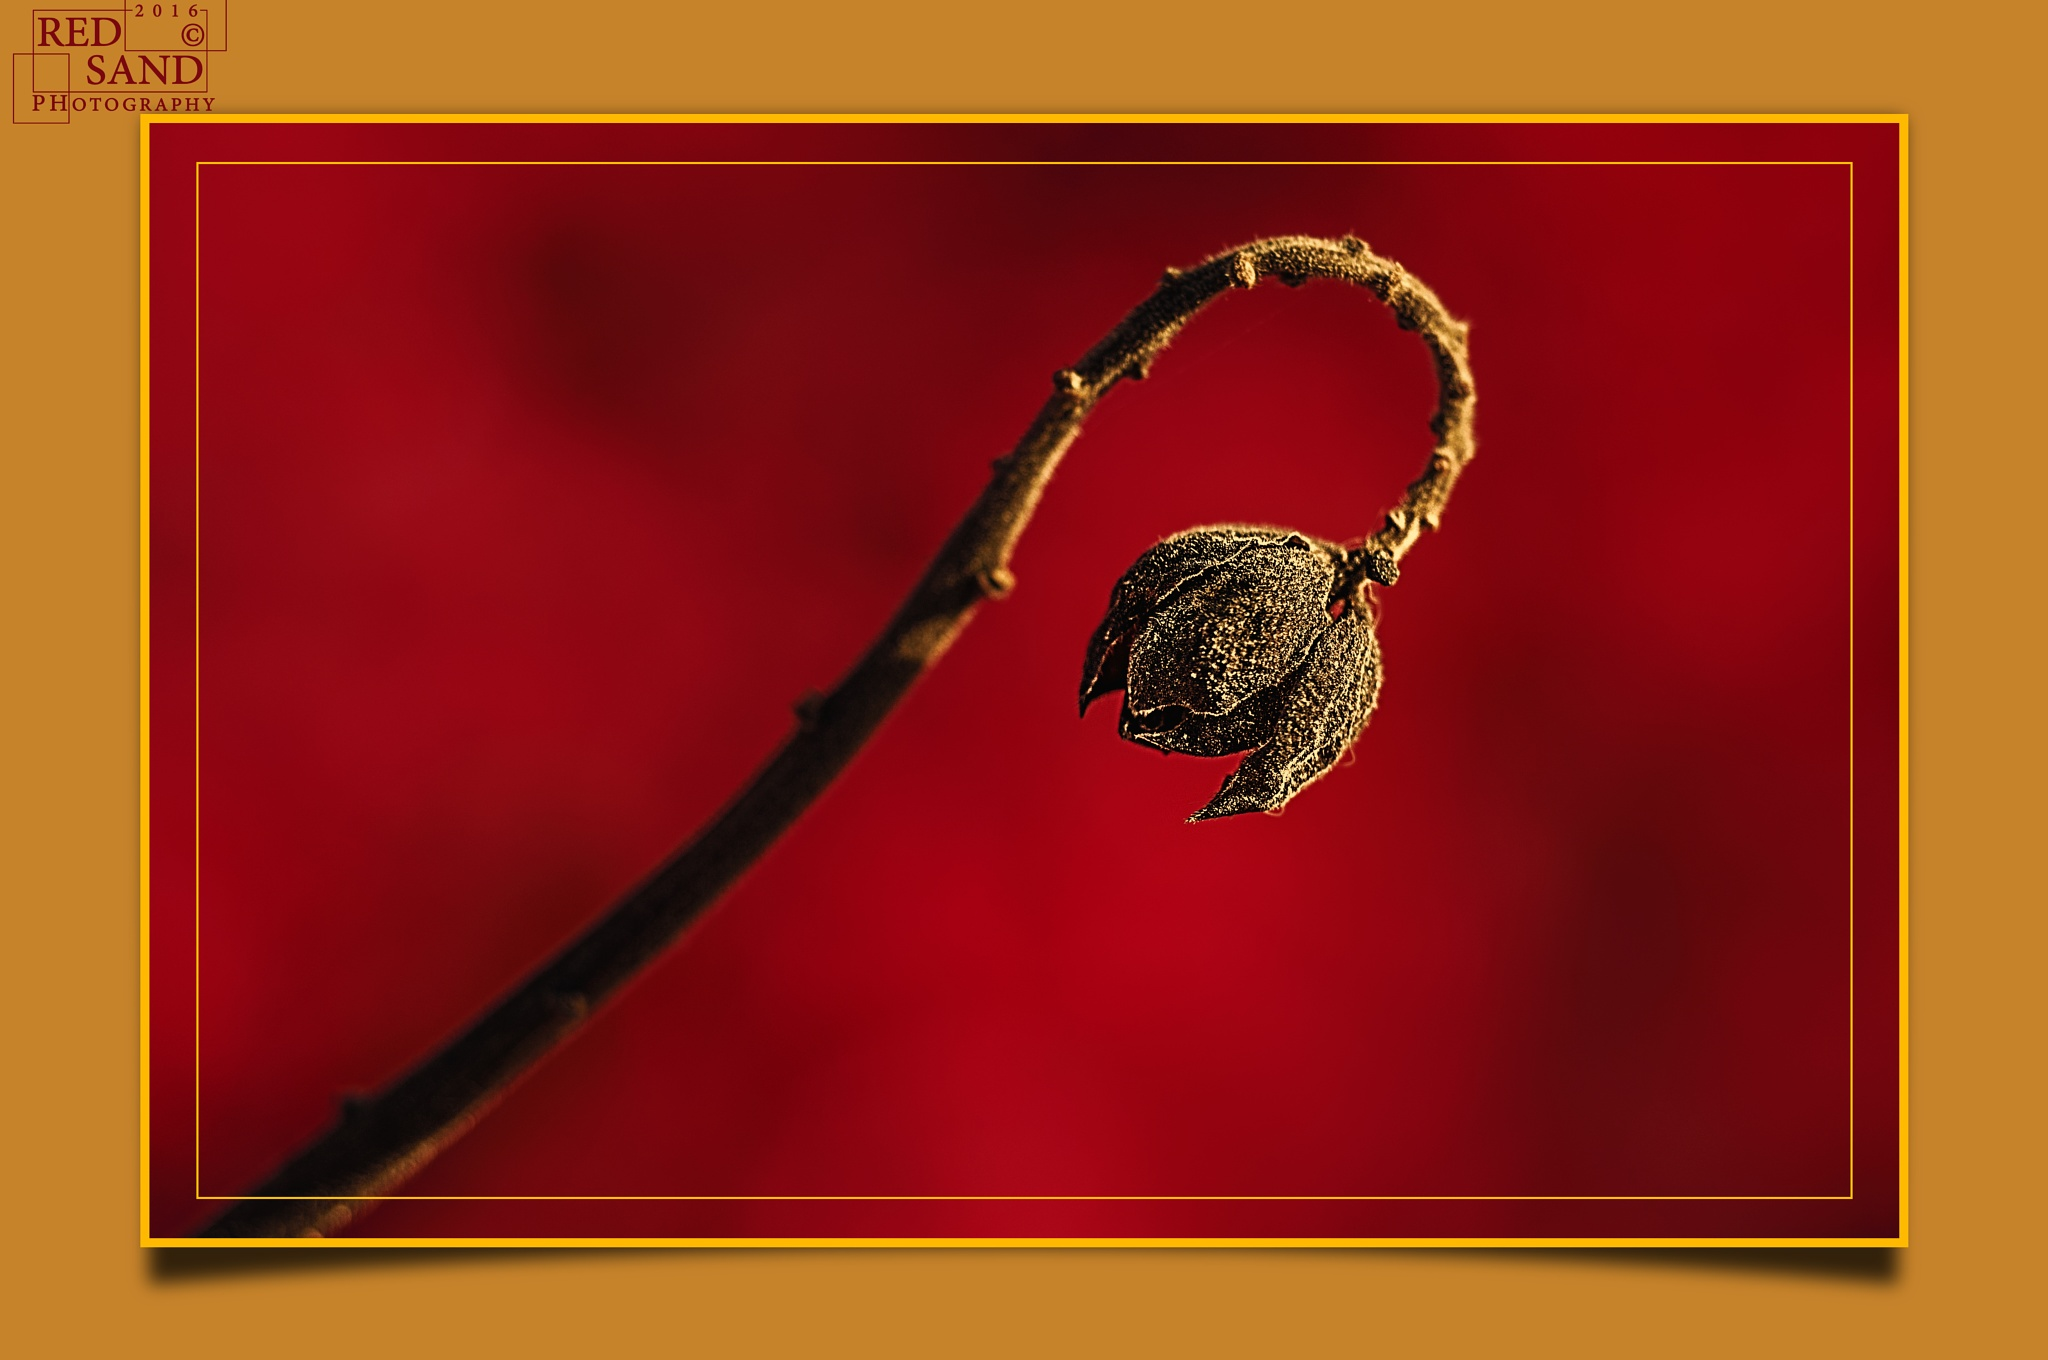 Nature's Hook 2 by Red Sand